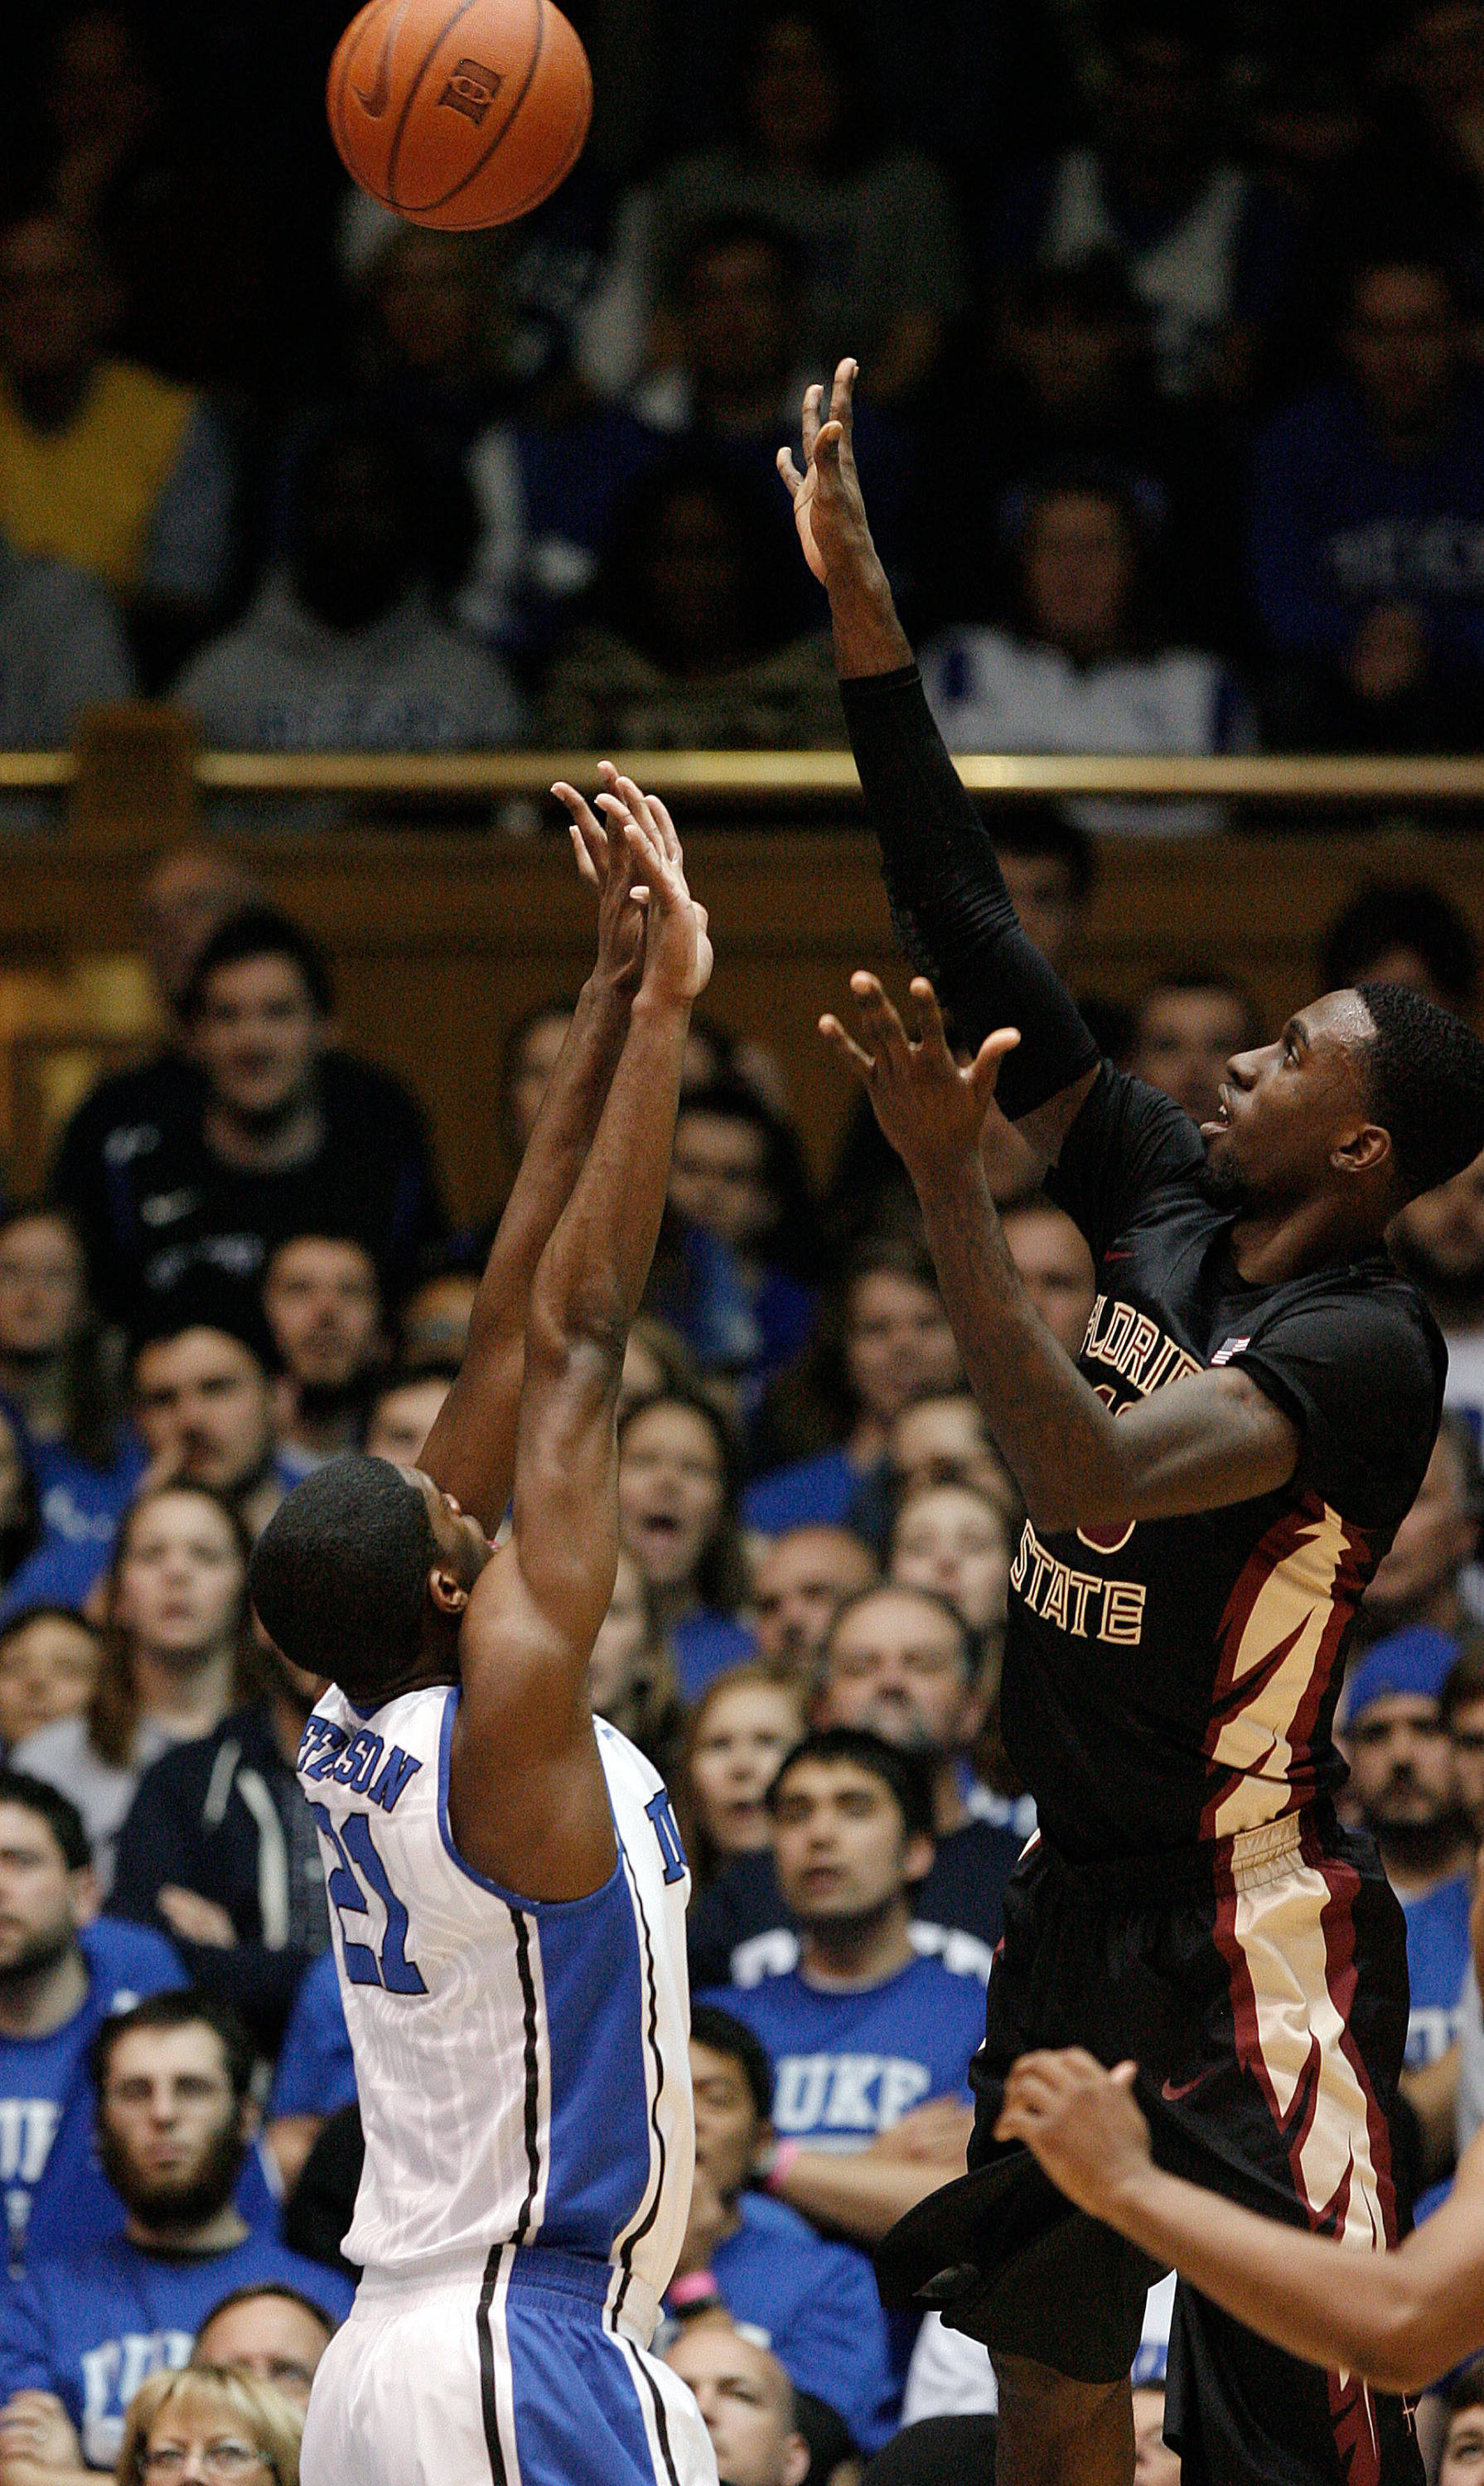 Jan 25, 2014; Durham, NC, USA; Seminoles forward Okaro White (10) shoots over Duke Blue Devils forward Amile Jefferson (21). Mark Dolejs-USA TODAY Sports